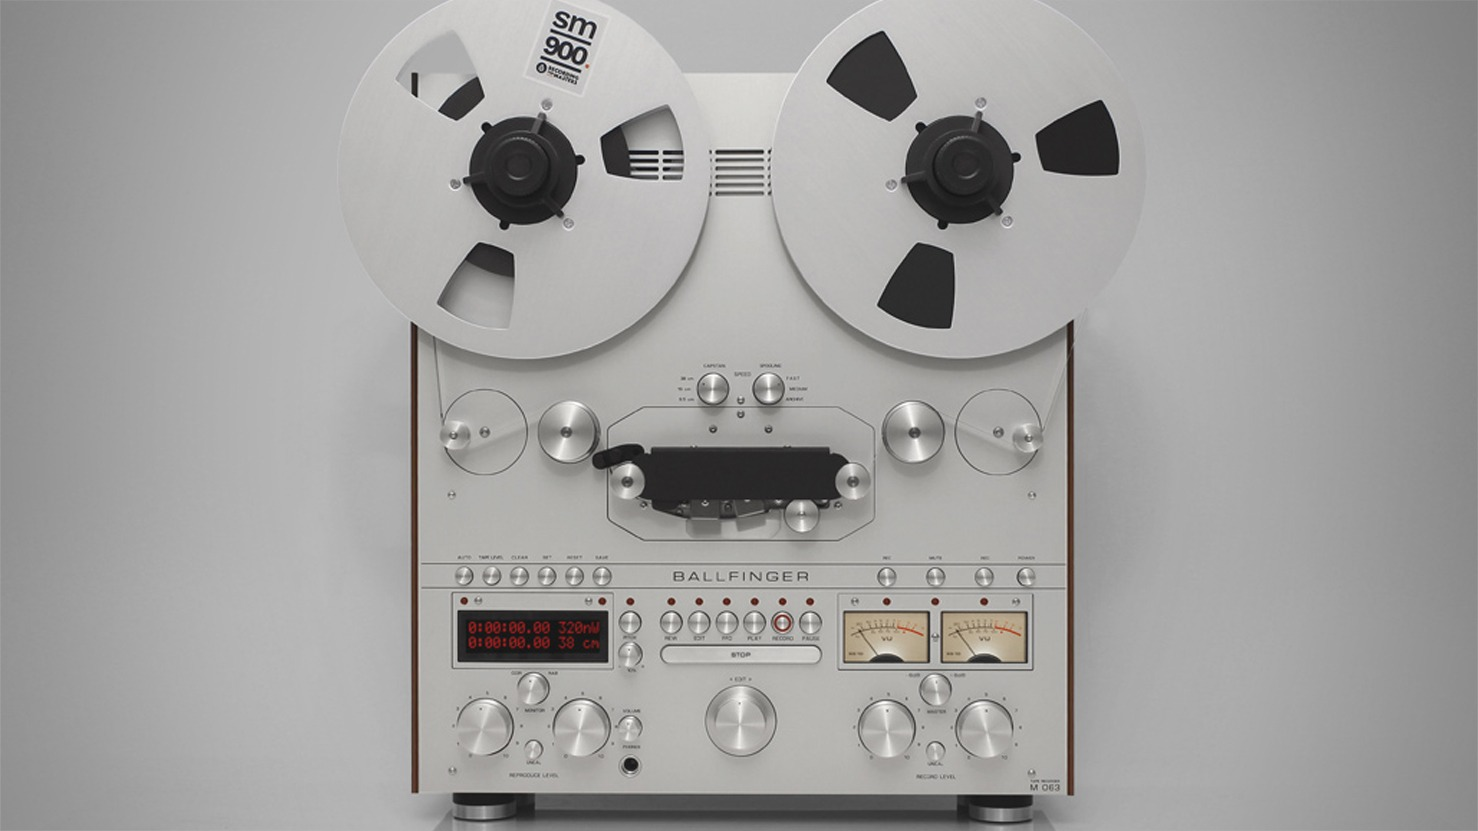 Precision-Engineered Reel-to-Reel Tape Decks Make a Stunning Comeback